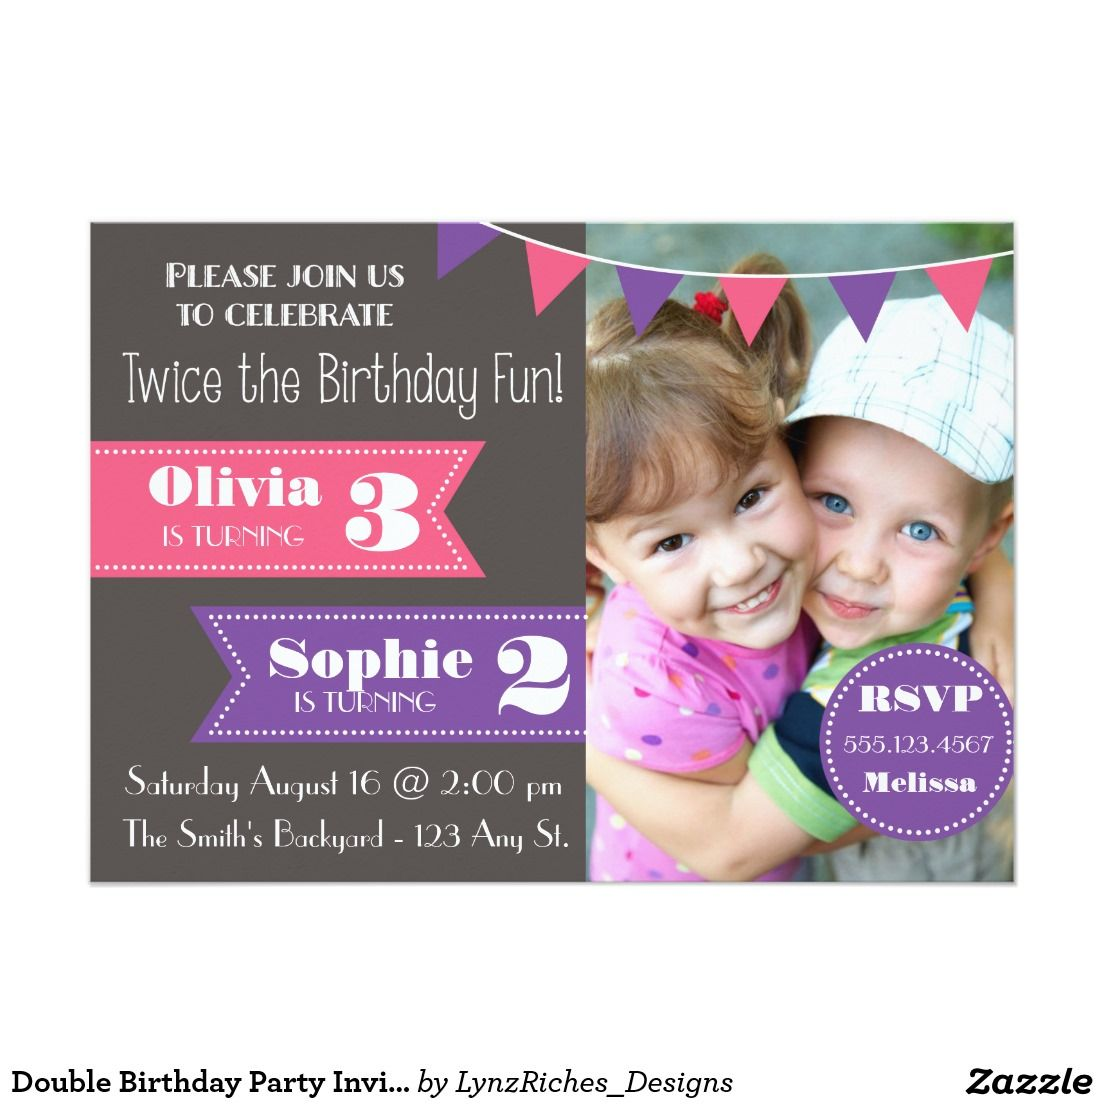 20 Joint Birthday Party Invitation Wording 6 – Dual Birthday Party Invitations